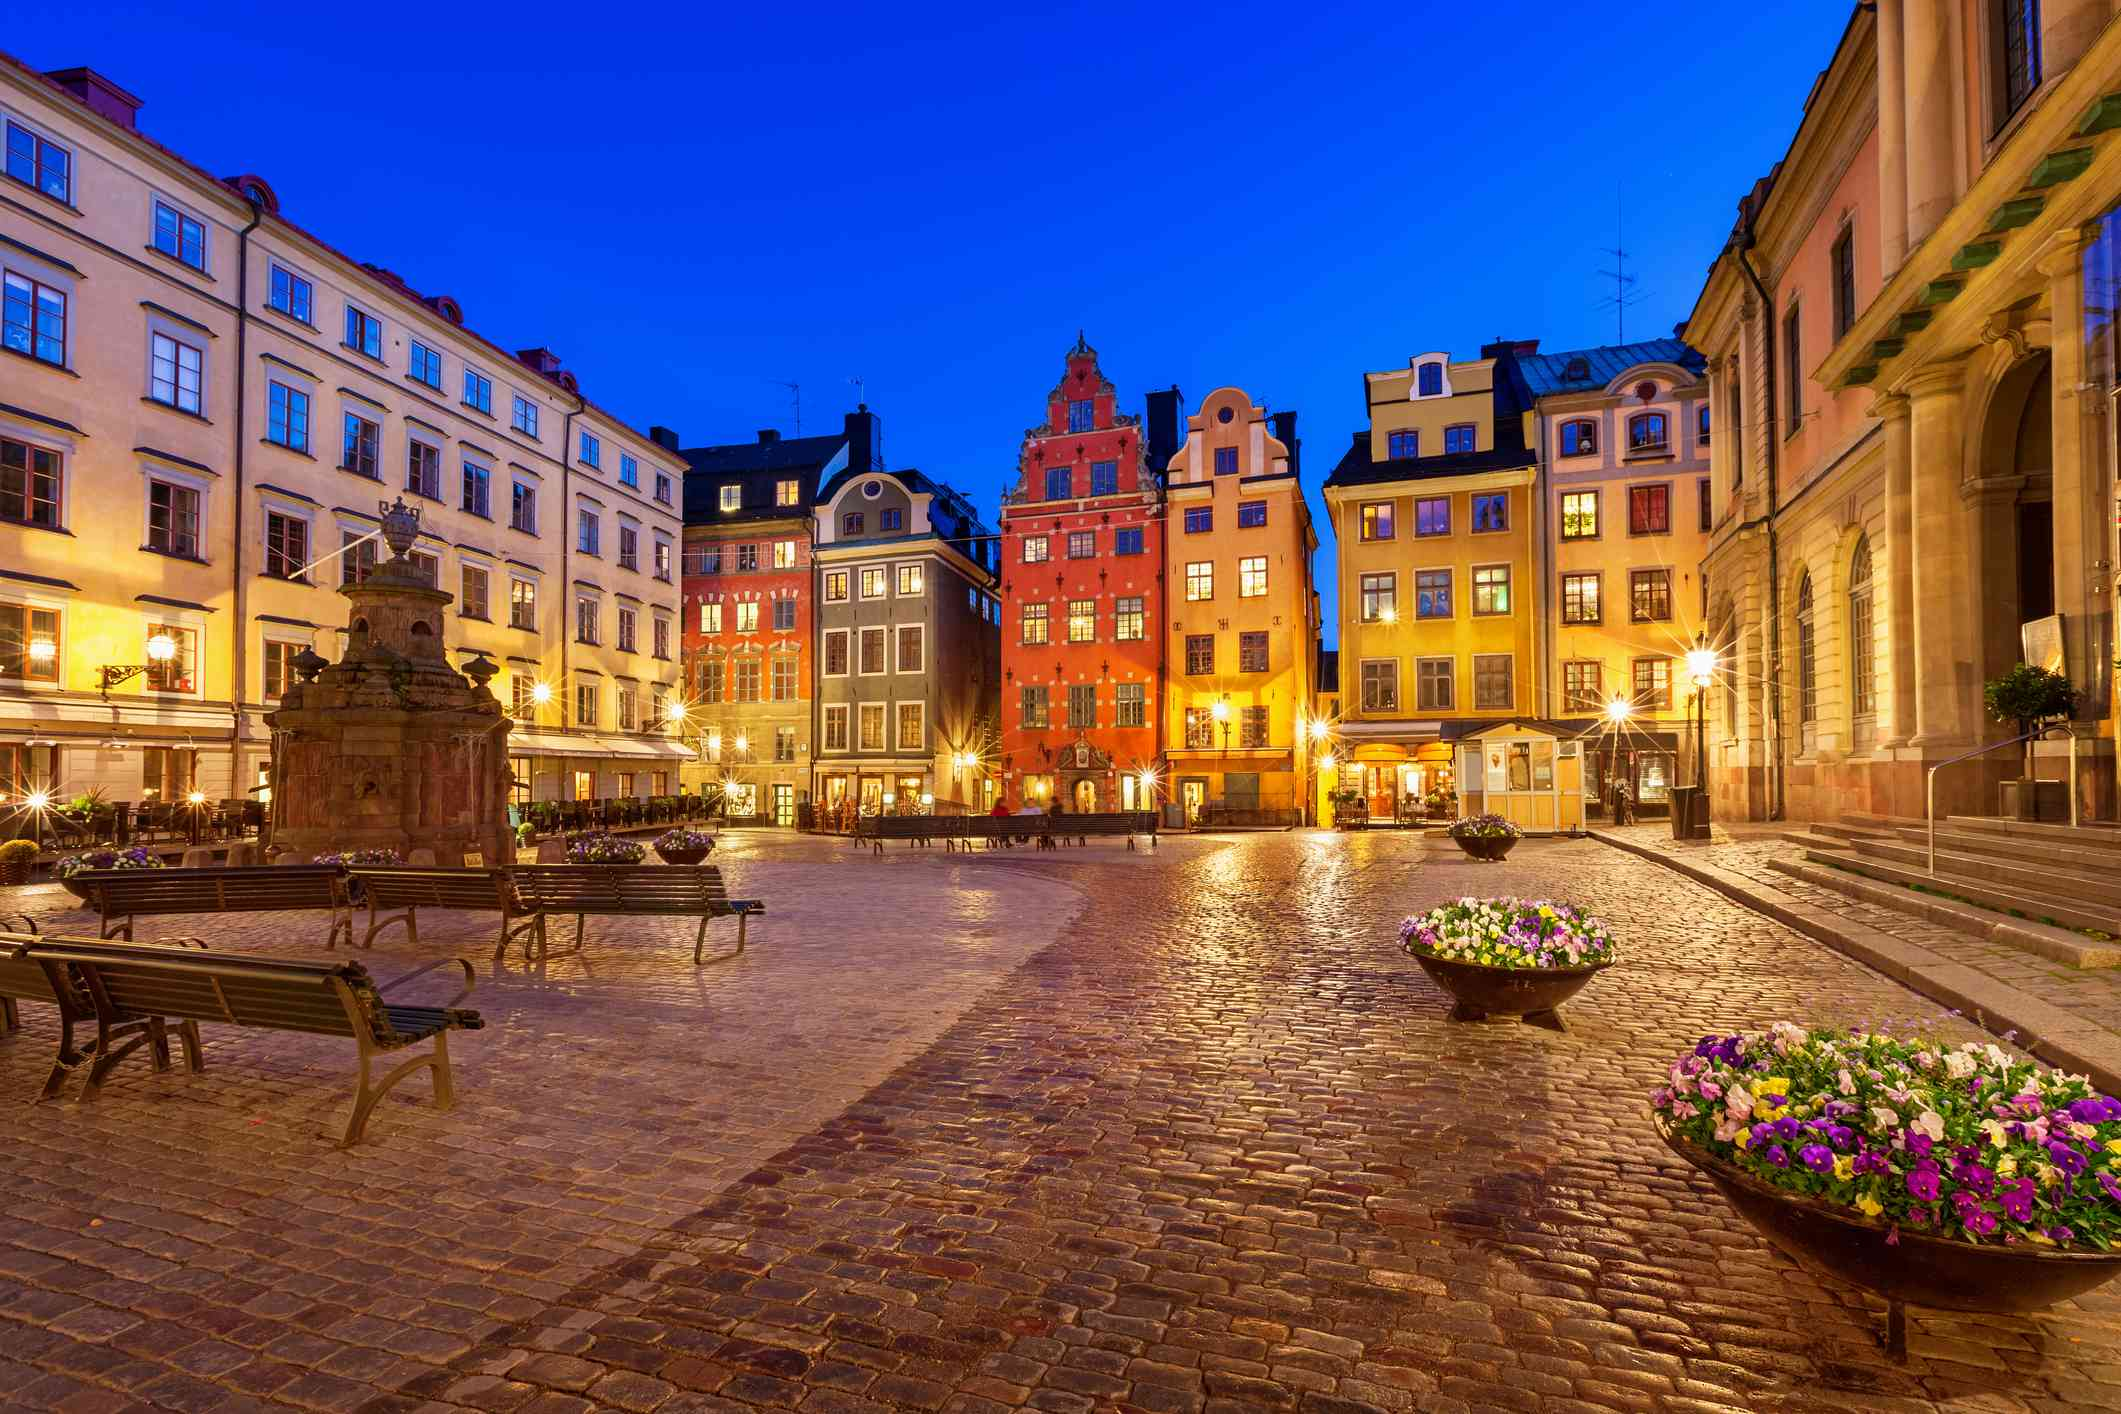 Stortorget town square in old town Stockholm